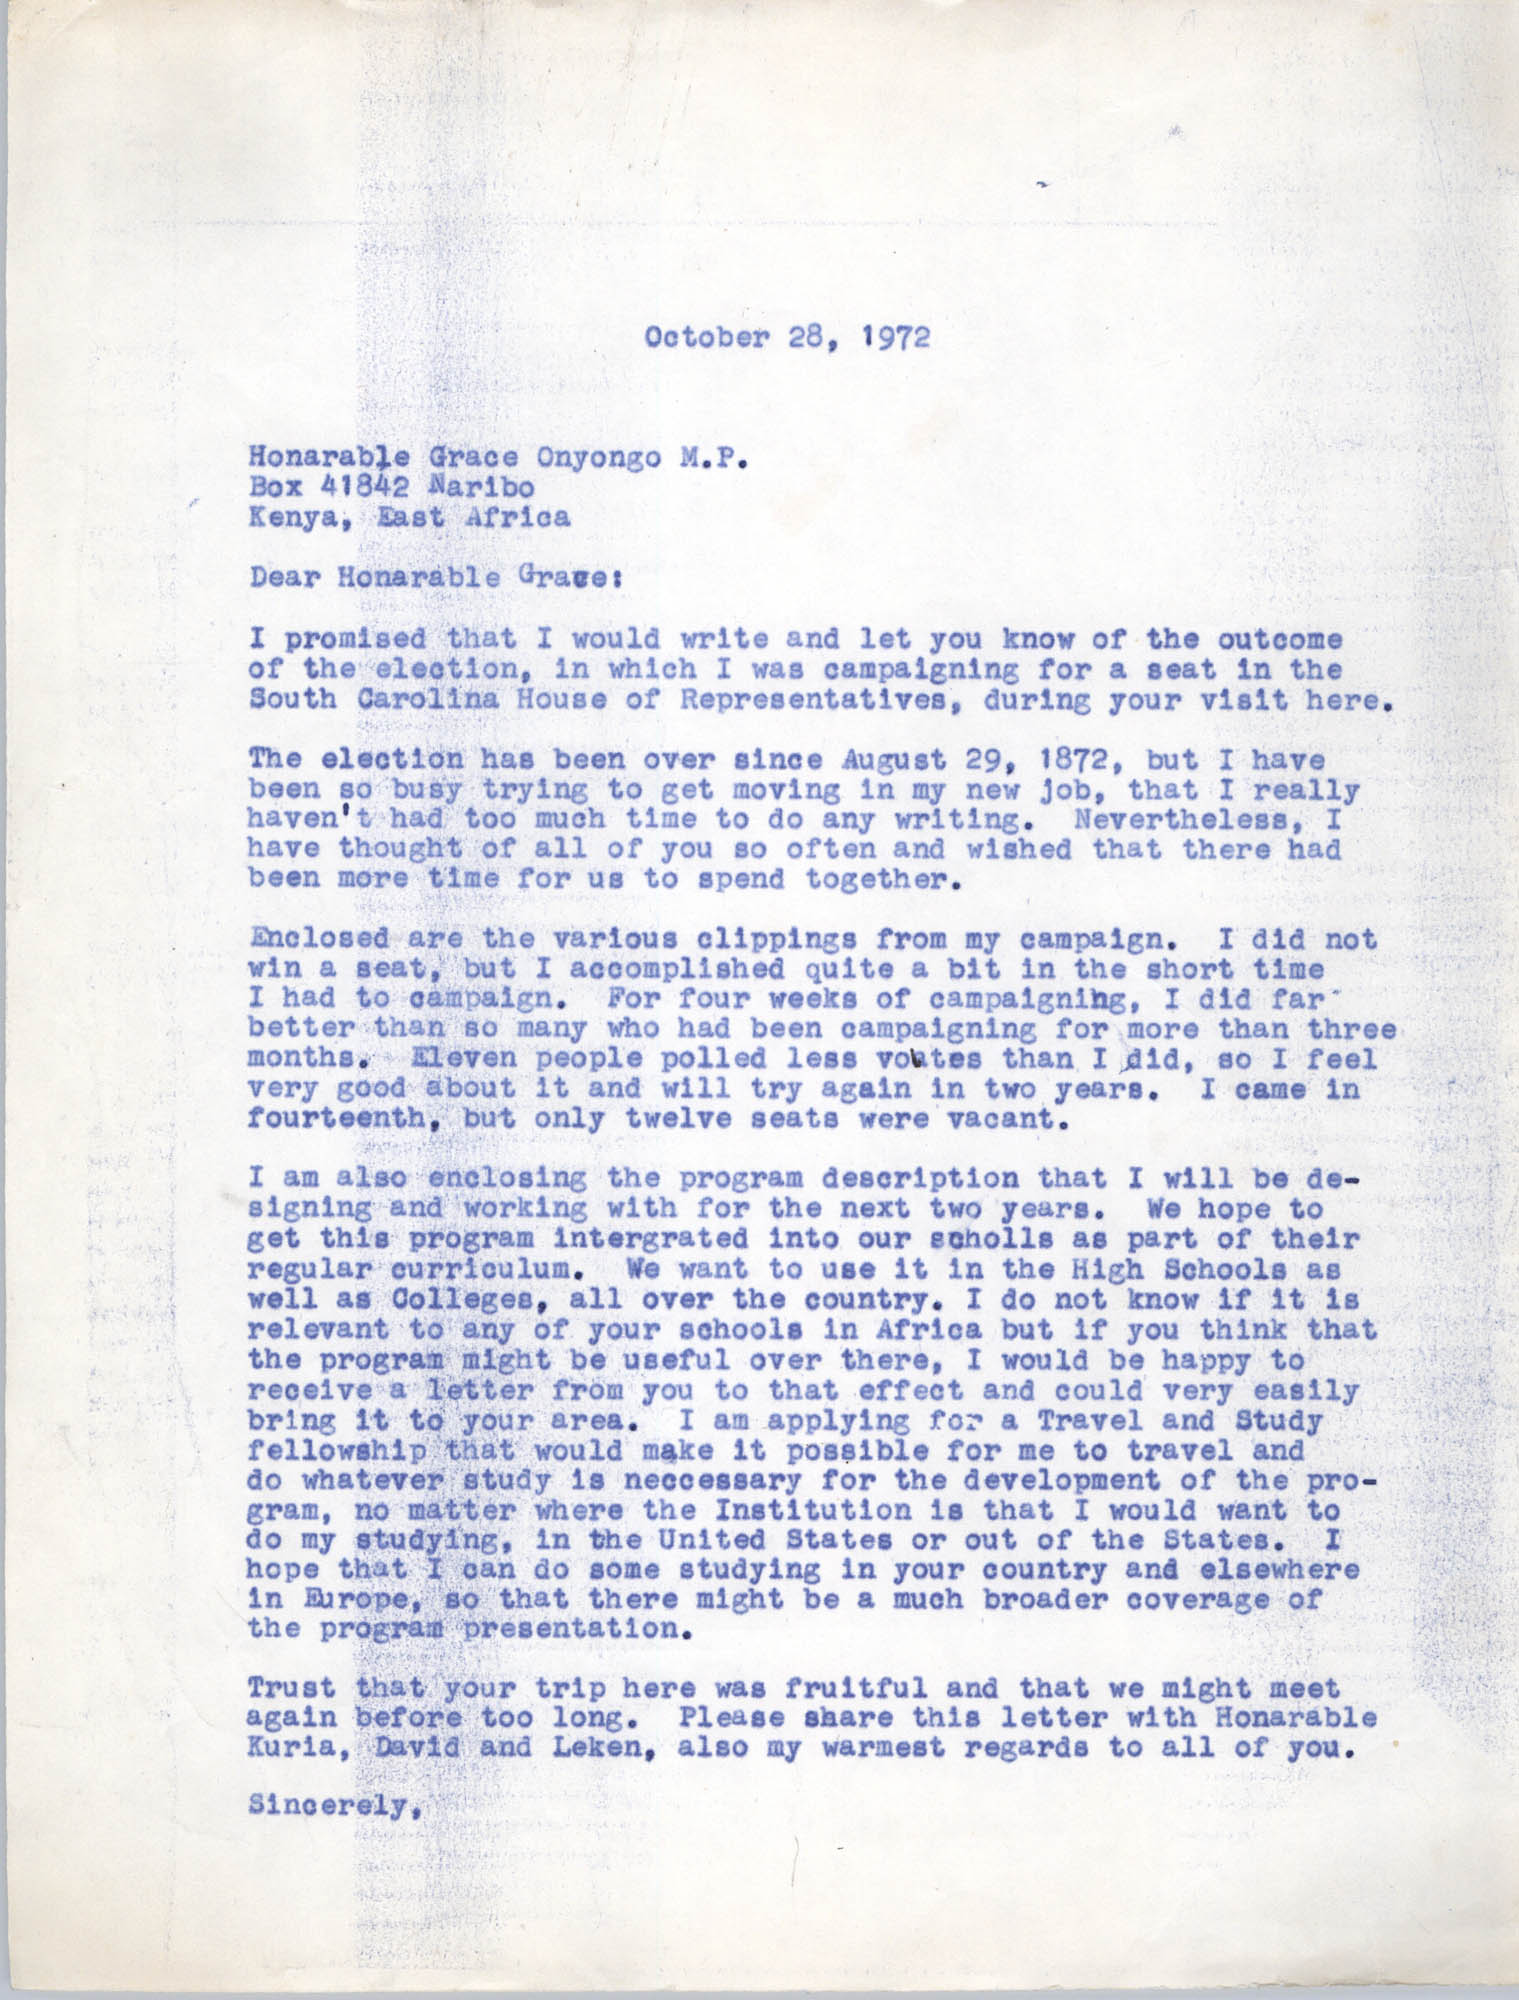 Letter from Bernice Robinson to Grace Onyongo, October 28, 1972